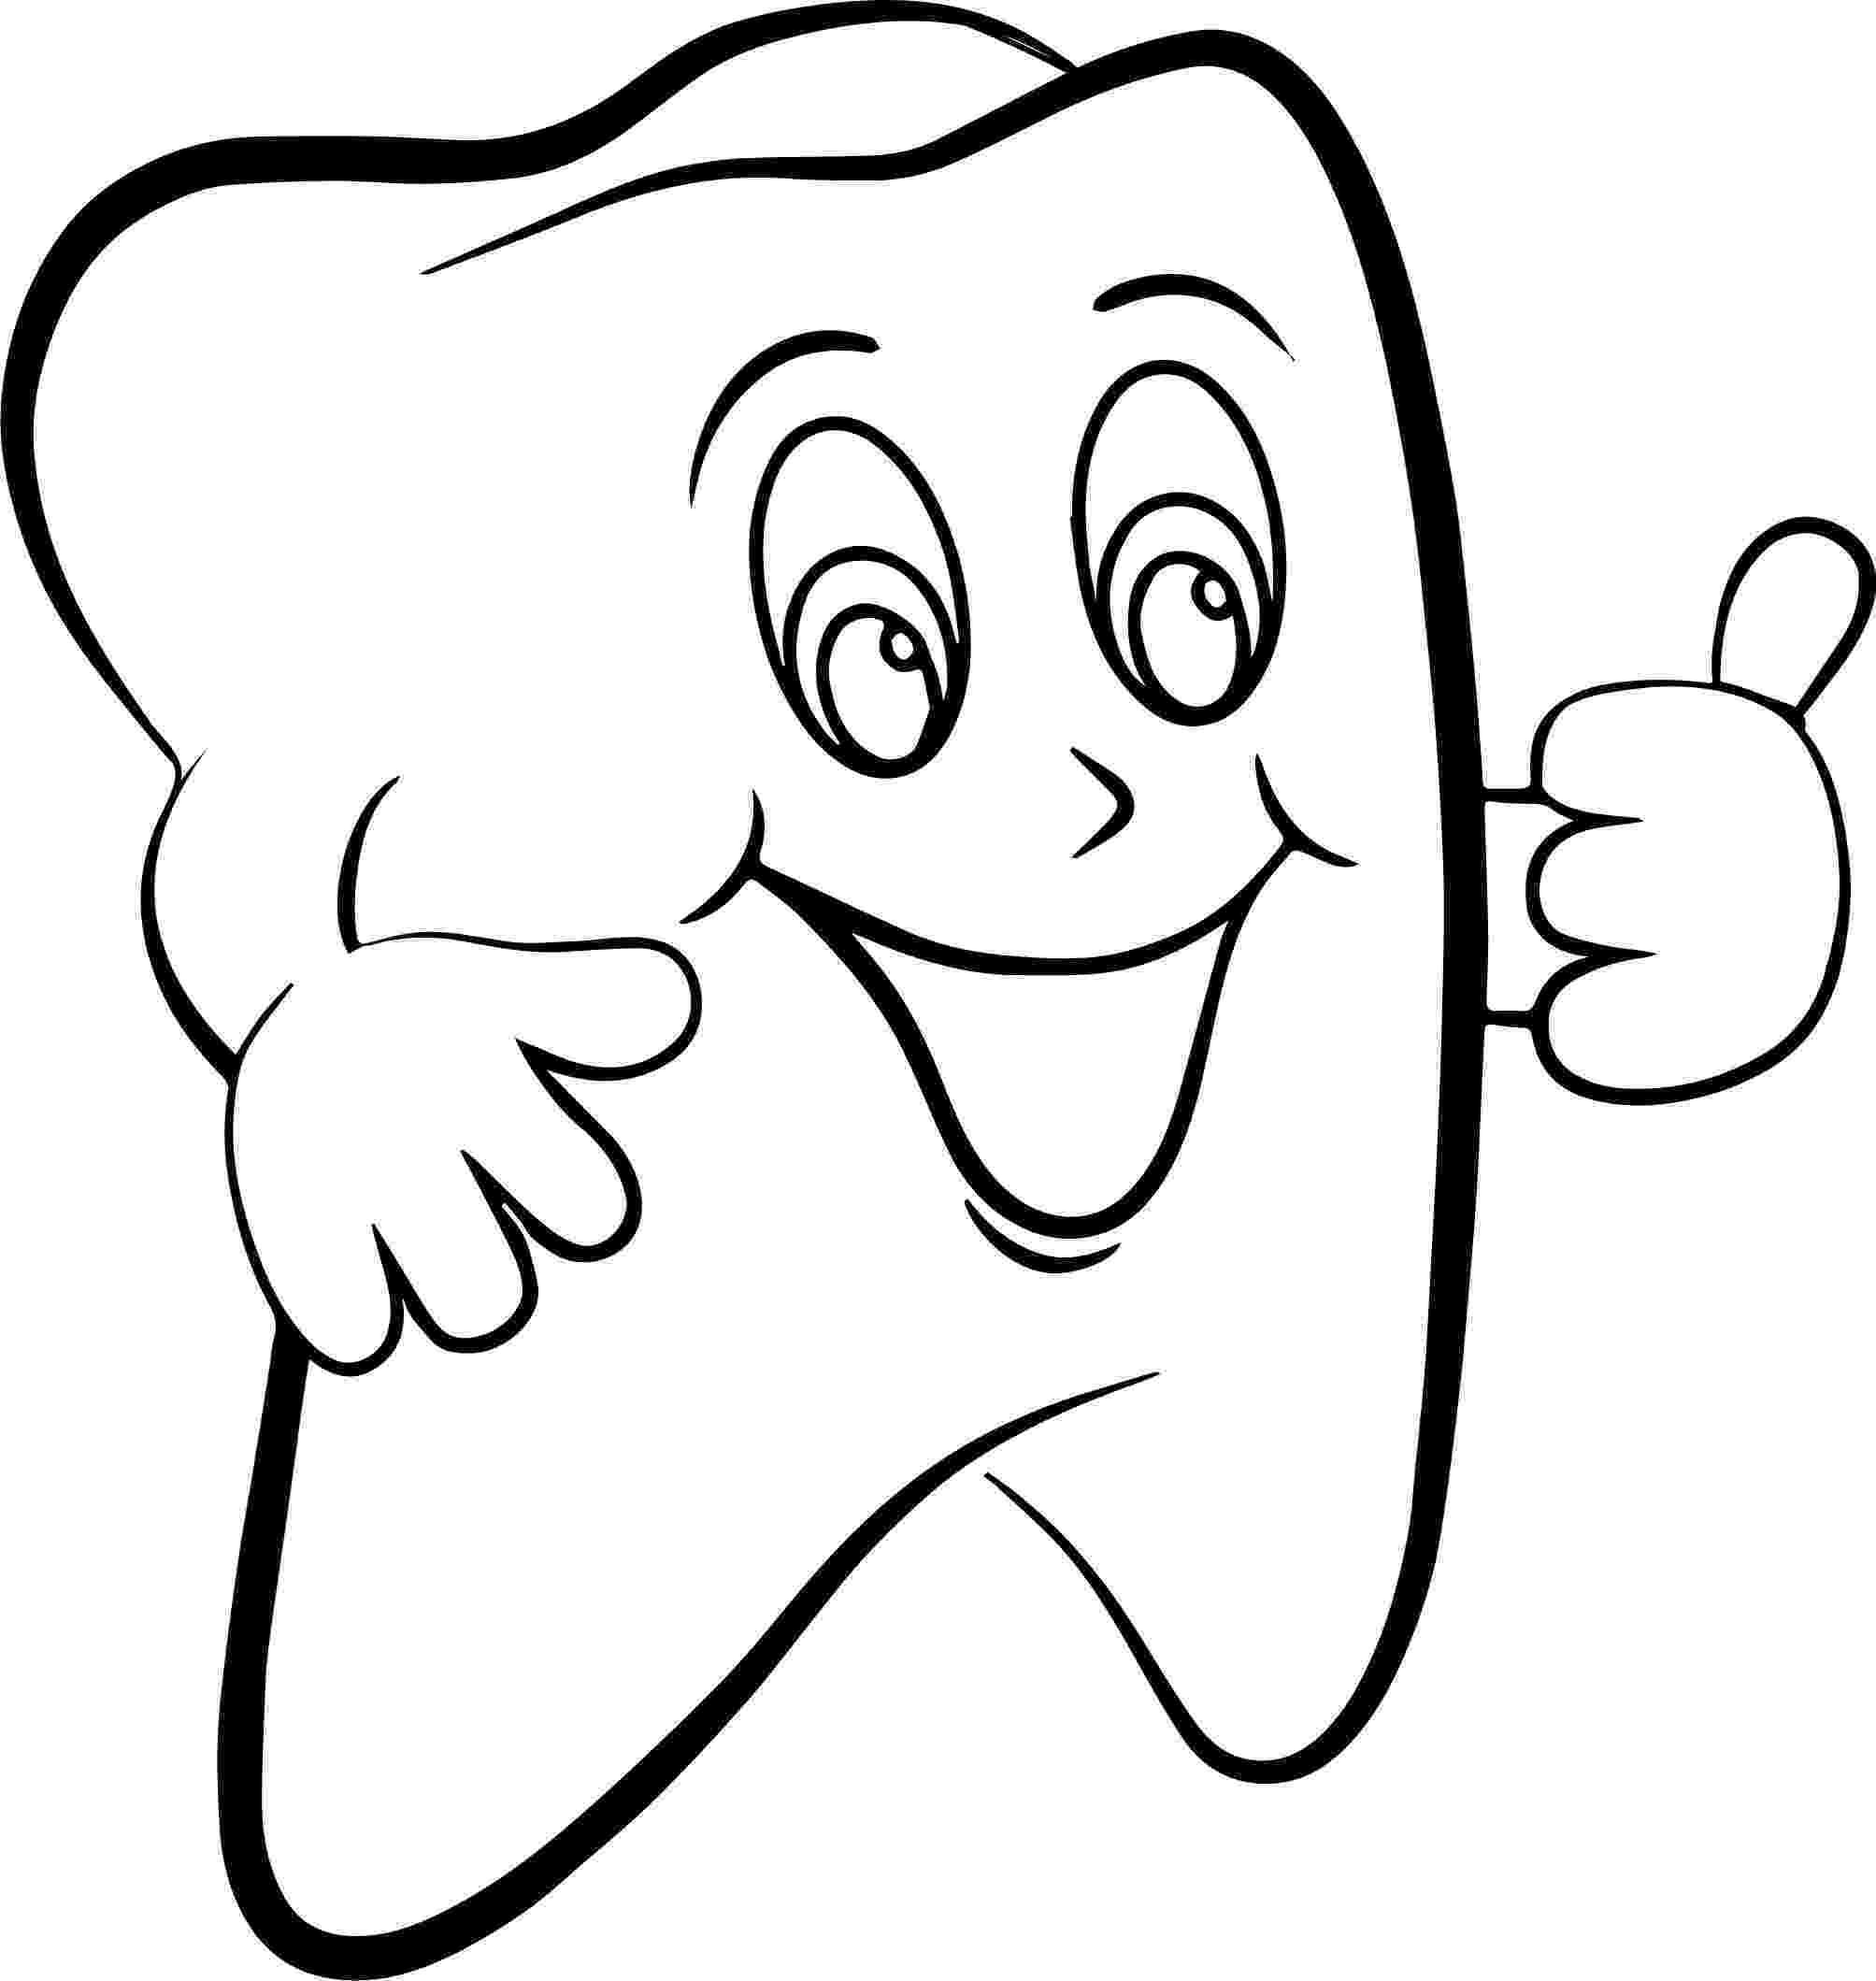 teeth coloring page fun coloring pages dentaltooth coloring pages page coloring teeth